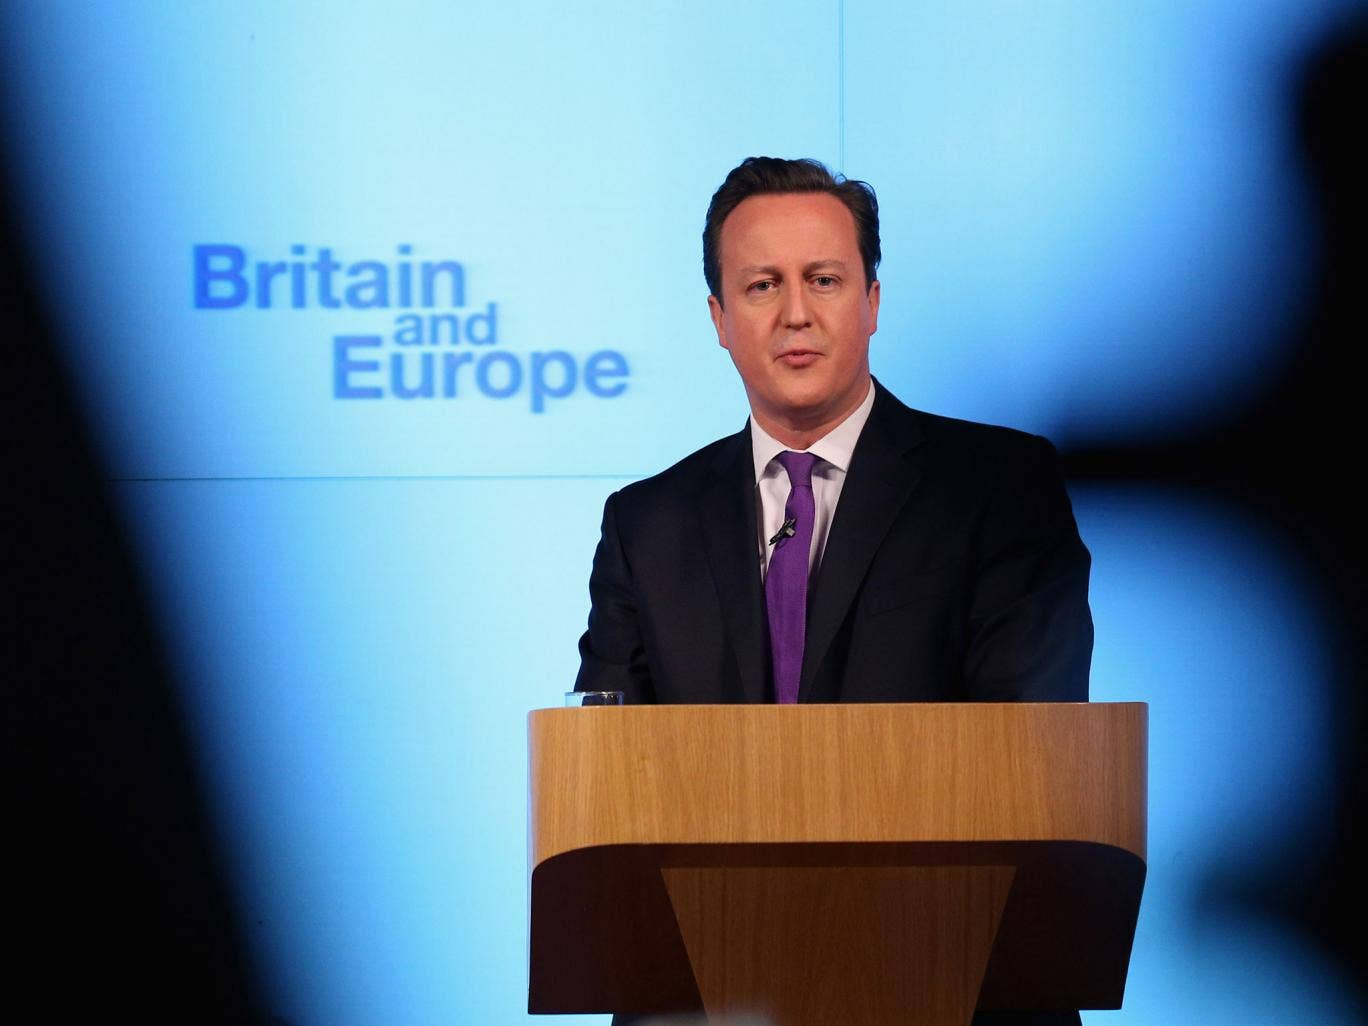 Mr Cameron will use the increase in popularity for Ukip as a key argument in his attempt to wrest powers back from Brussels to London